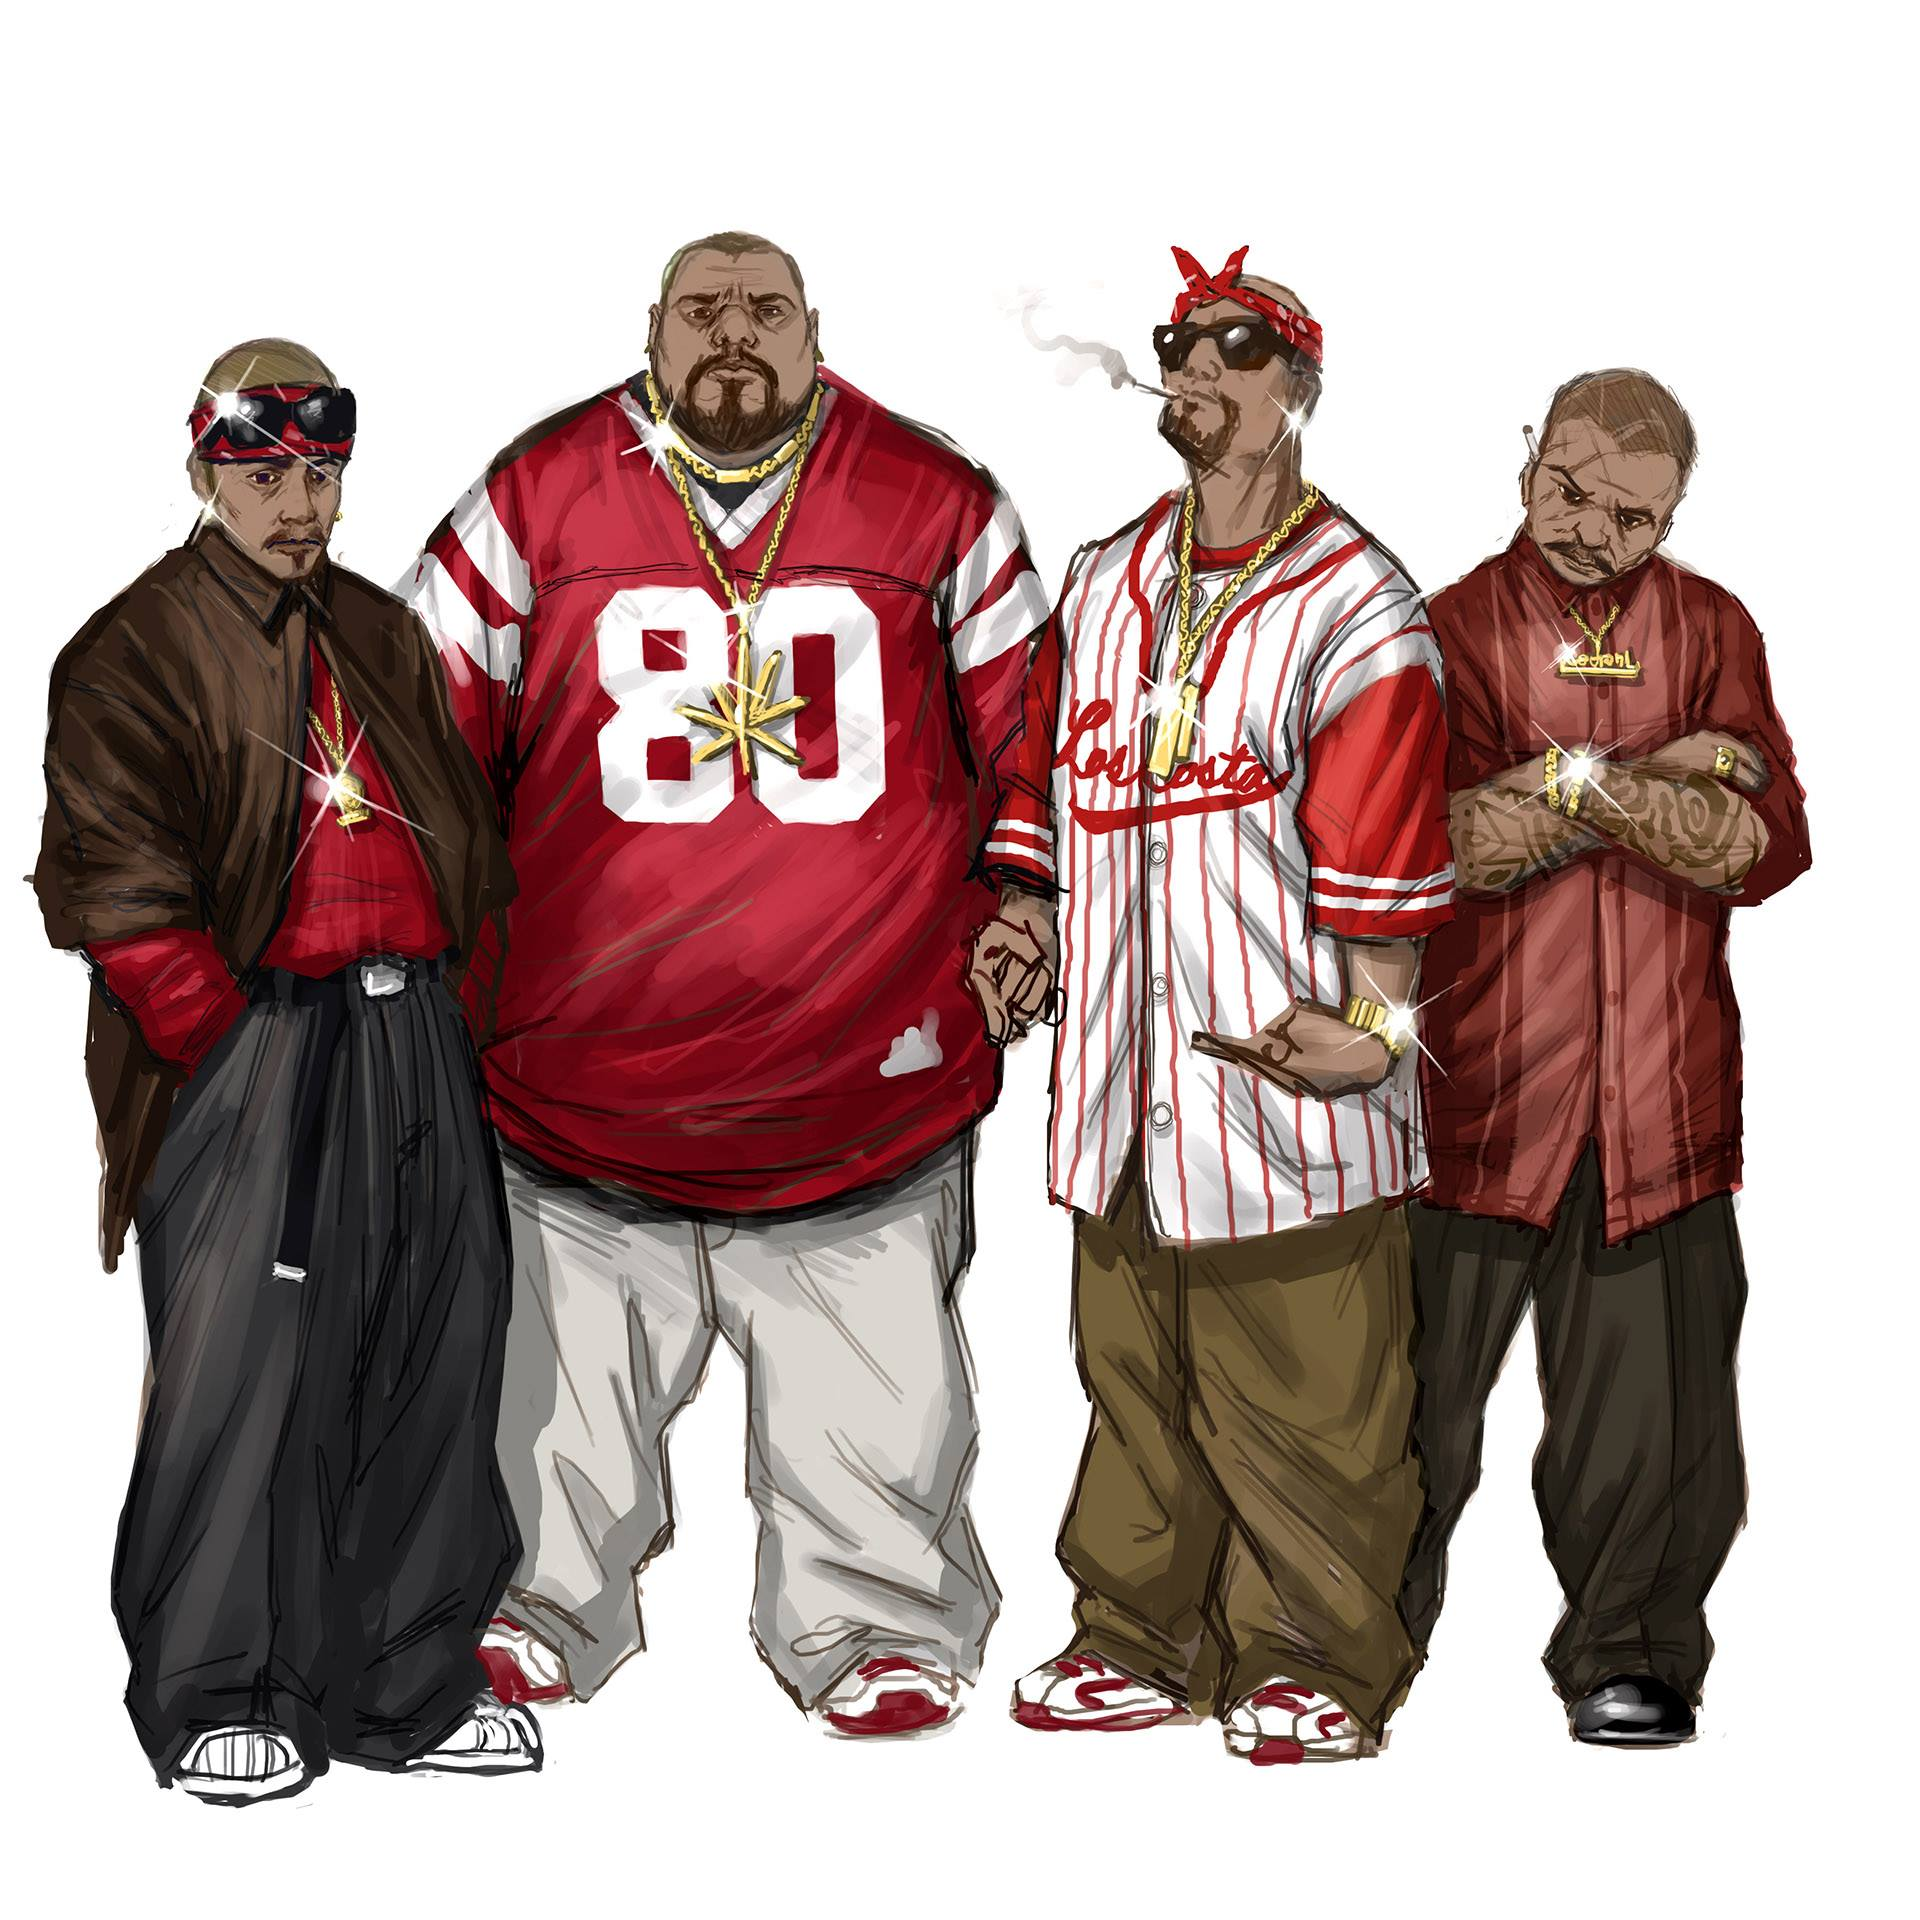 Image - Los Carnales Concept Art - four gang members.jpg | Saints Row Wiki | FANDOM powered by Wikia